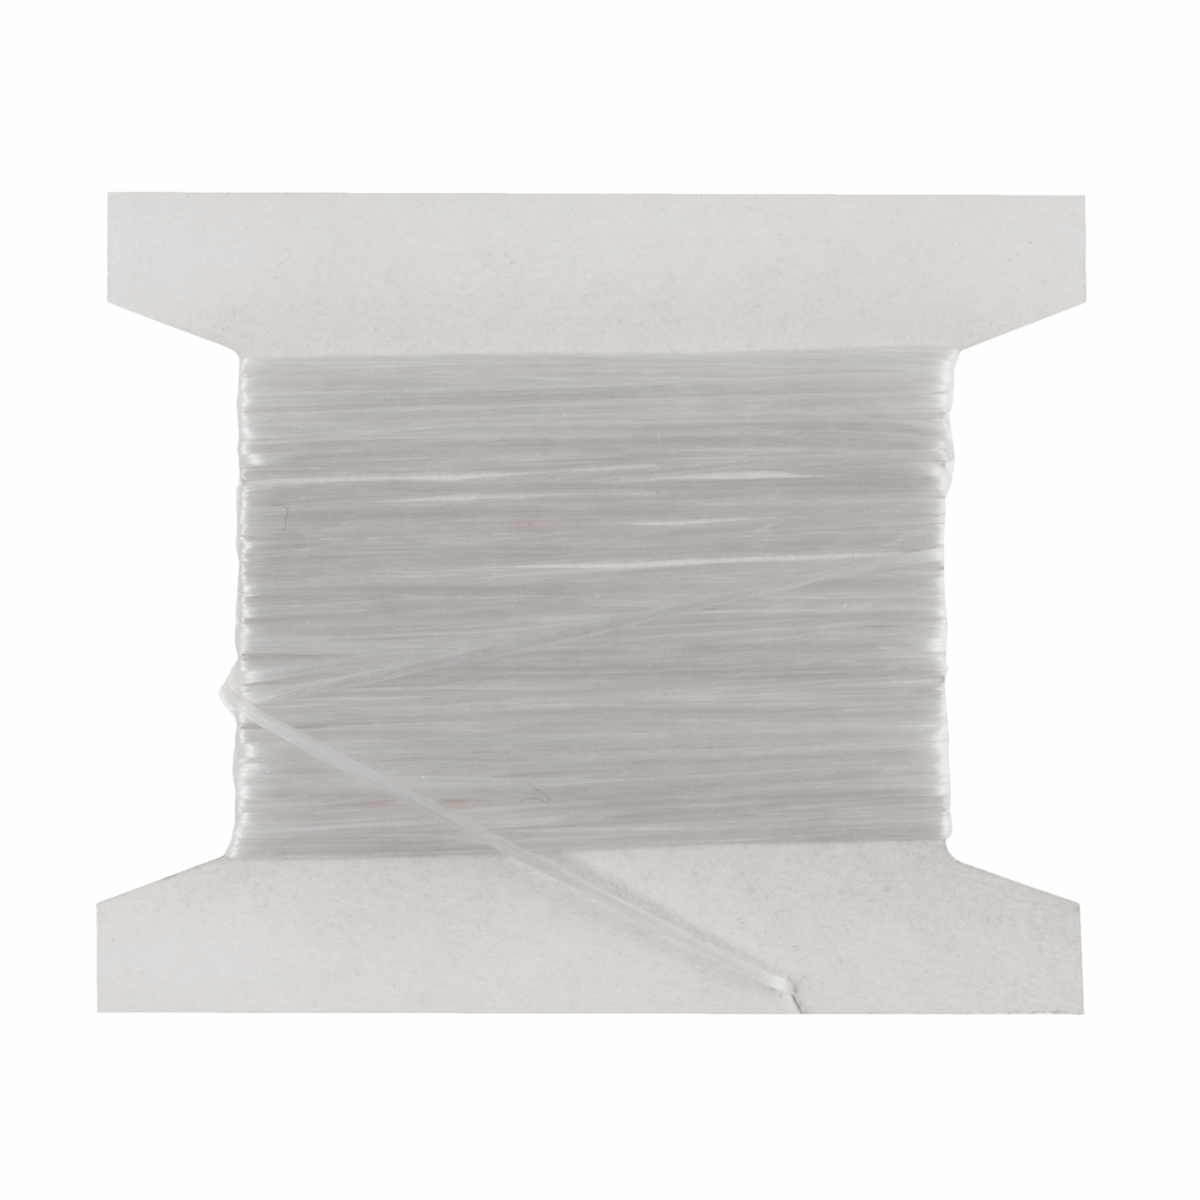 Picture of Magic Stretch Elastic: 1 Pack of 5m x 0.8mm: Clear